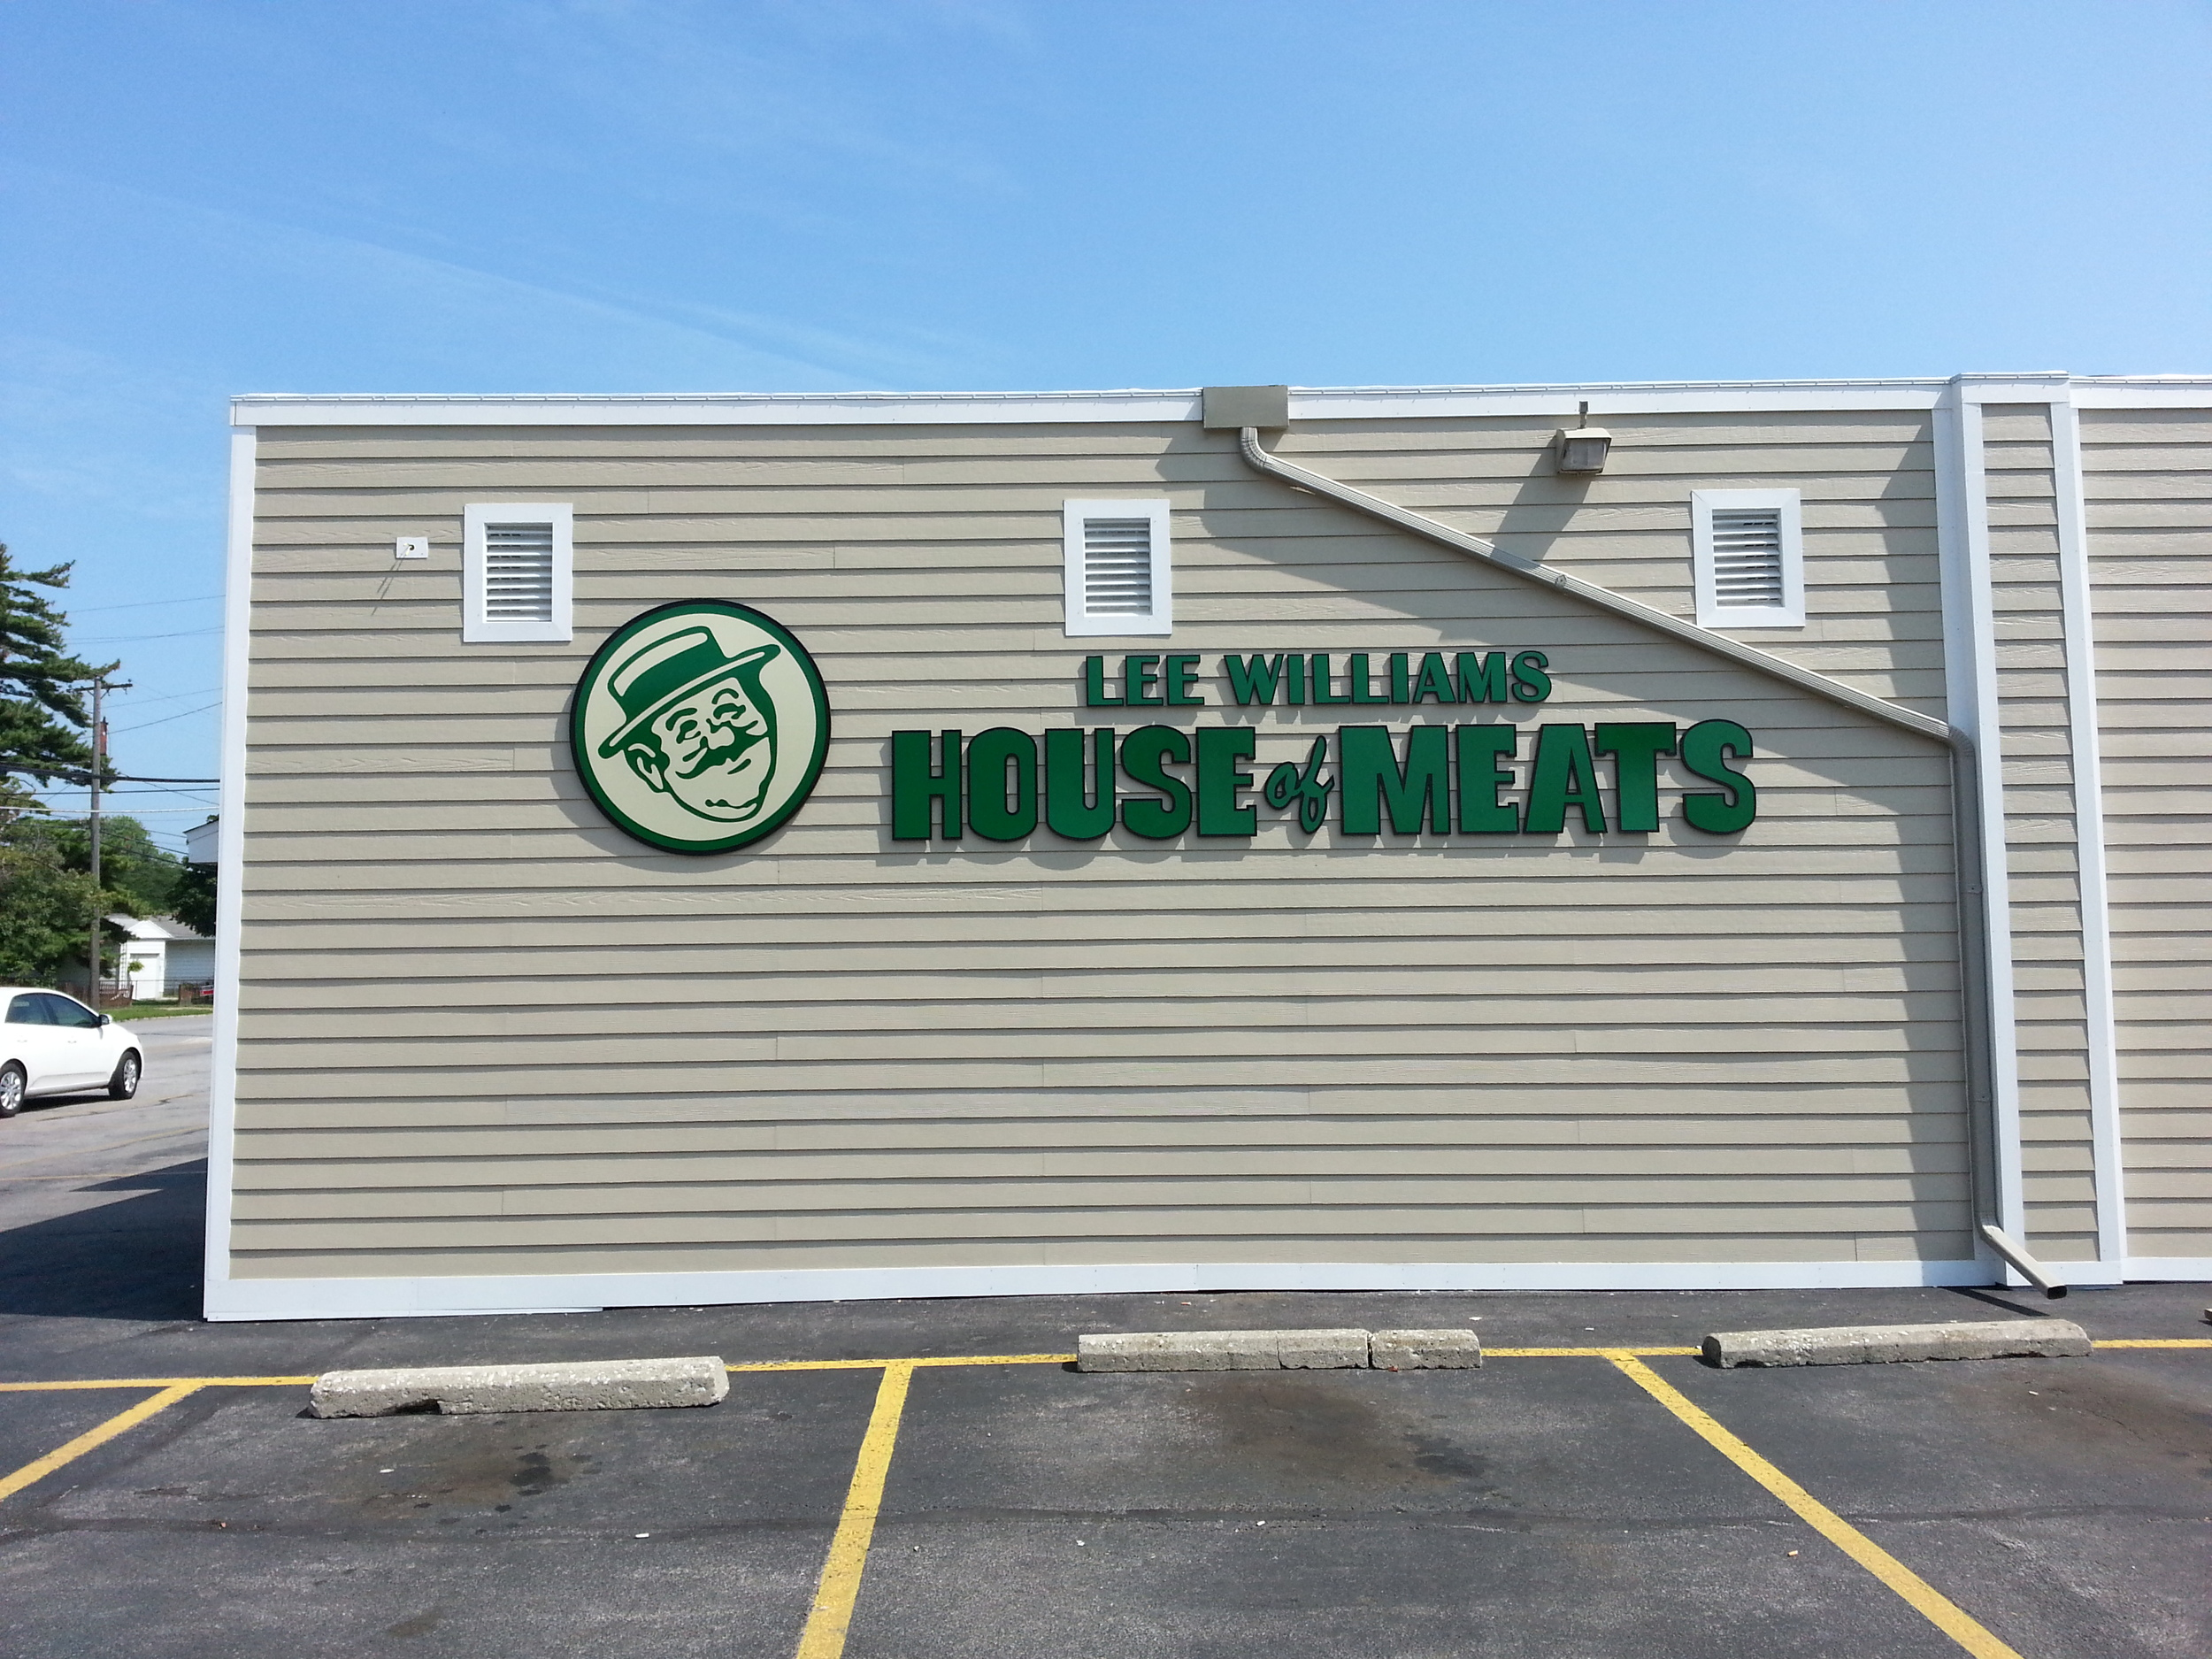 Lee Williams House of Meats